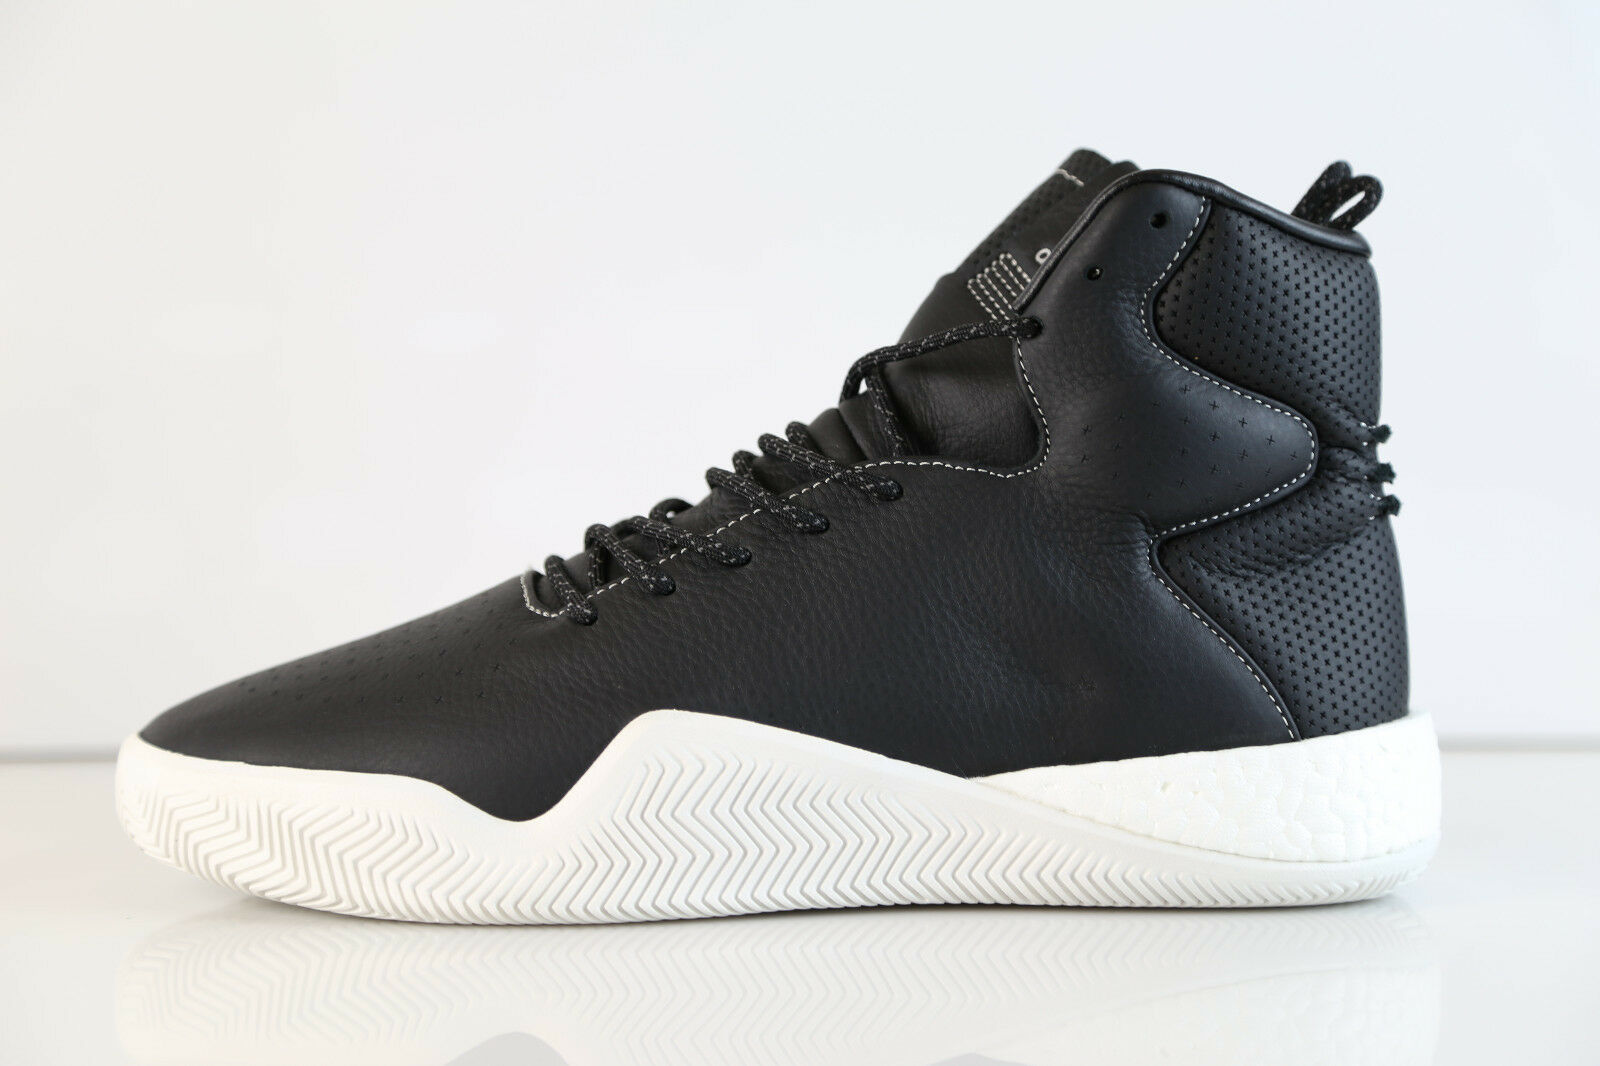 Adidas Originals Tubular Instinct Boost Black White BB8401 8-13 ultra 1 pk 3 The latest discount shoes for men and women